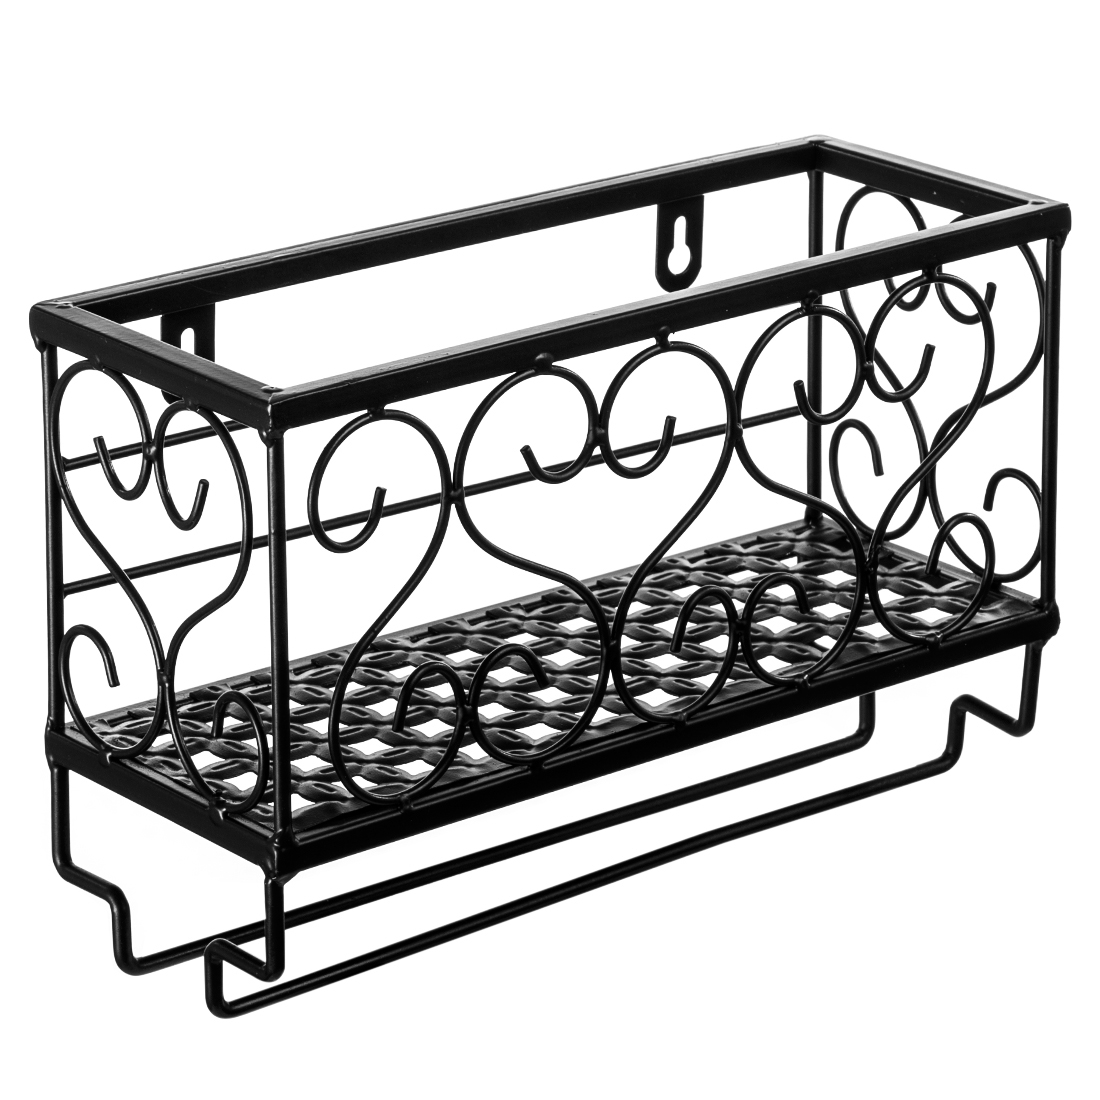 Small Storage Wine Rack Shelf Wrought Iron Wall Hanging Wine Rack Mounted Frame for Goblet kitchen Storage Holder Racks Shelfs